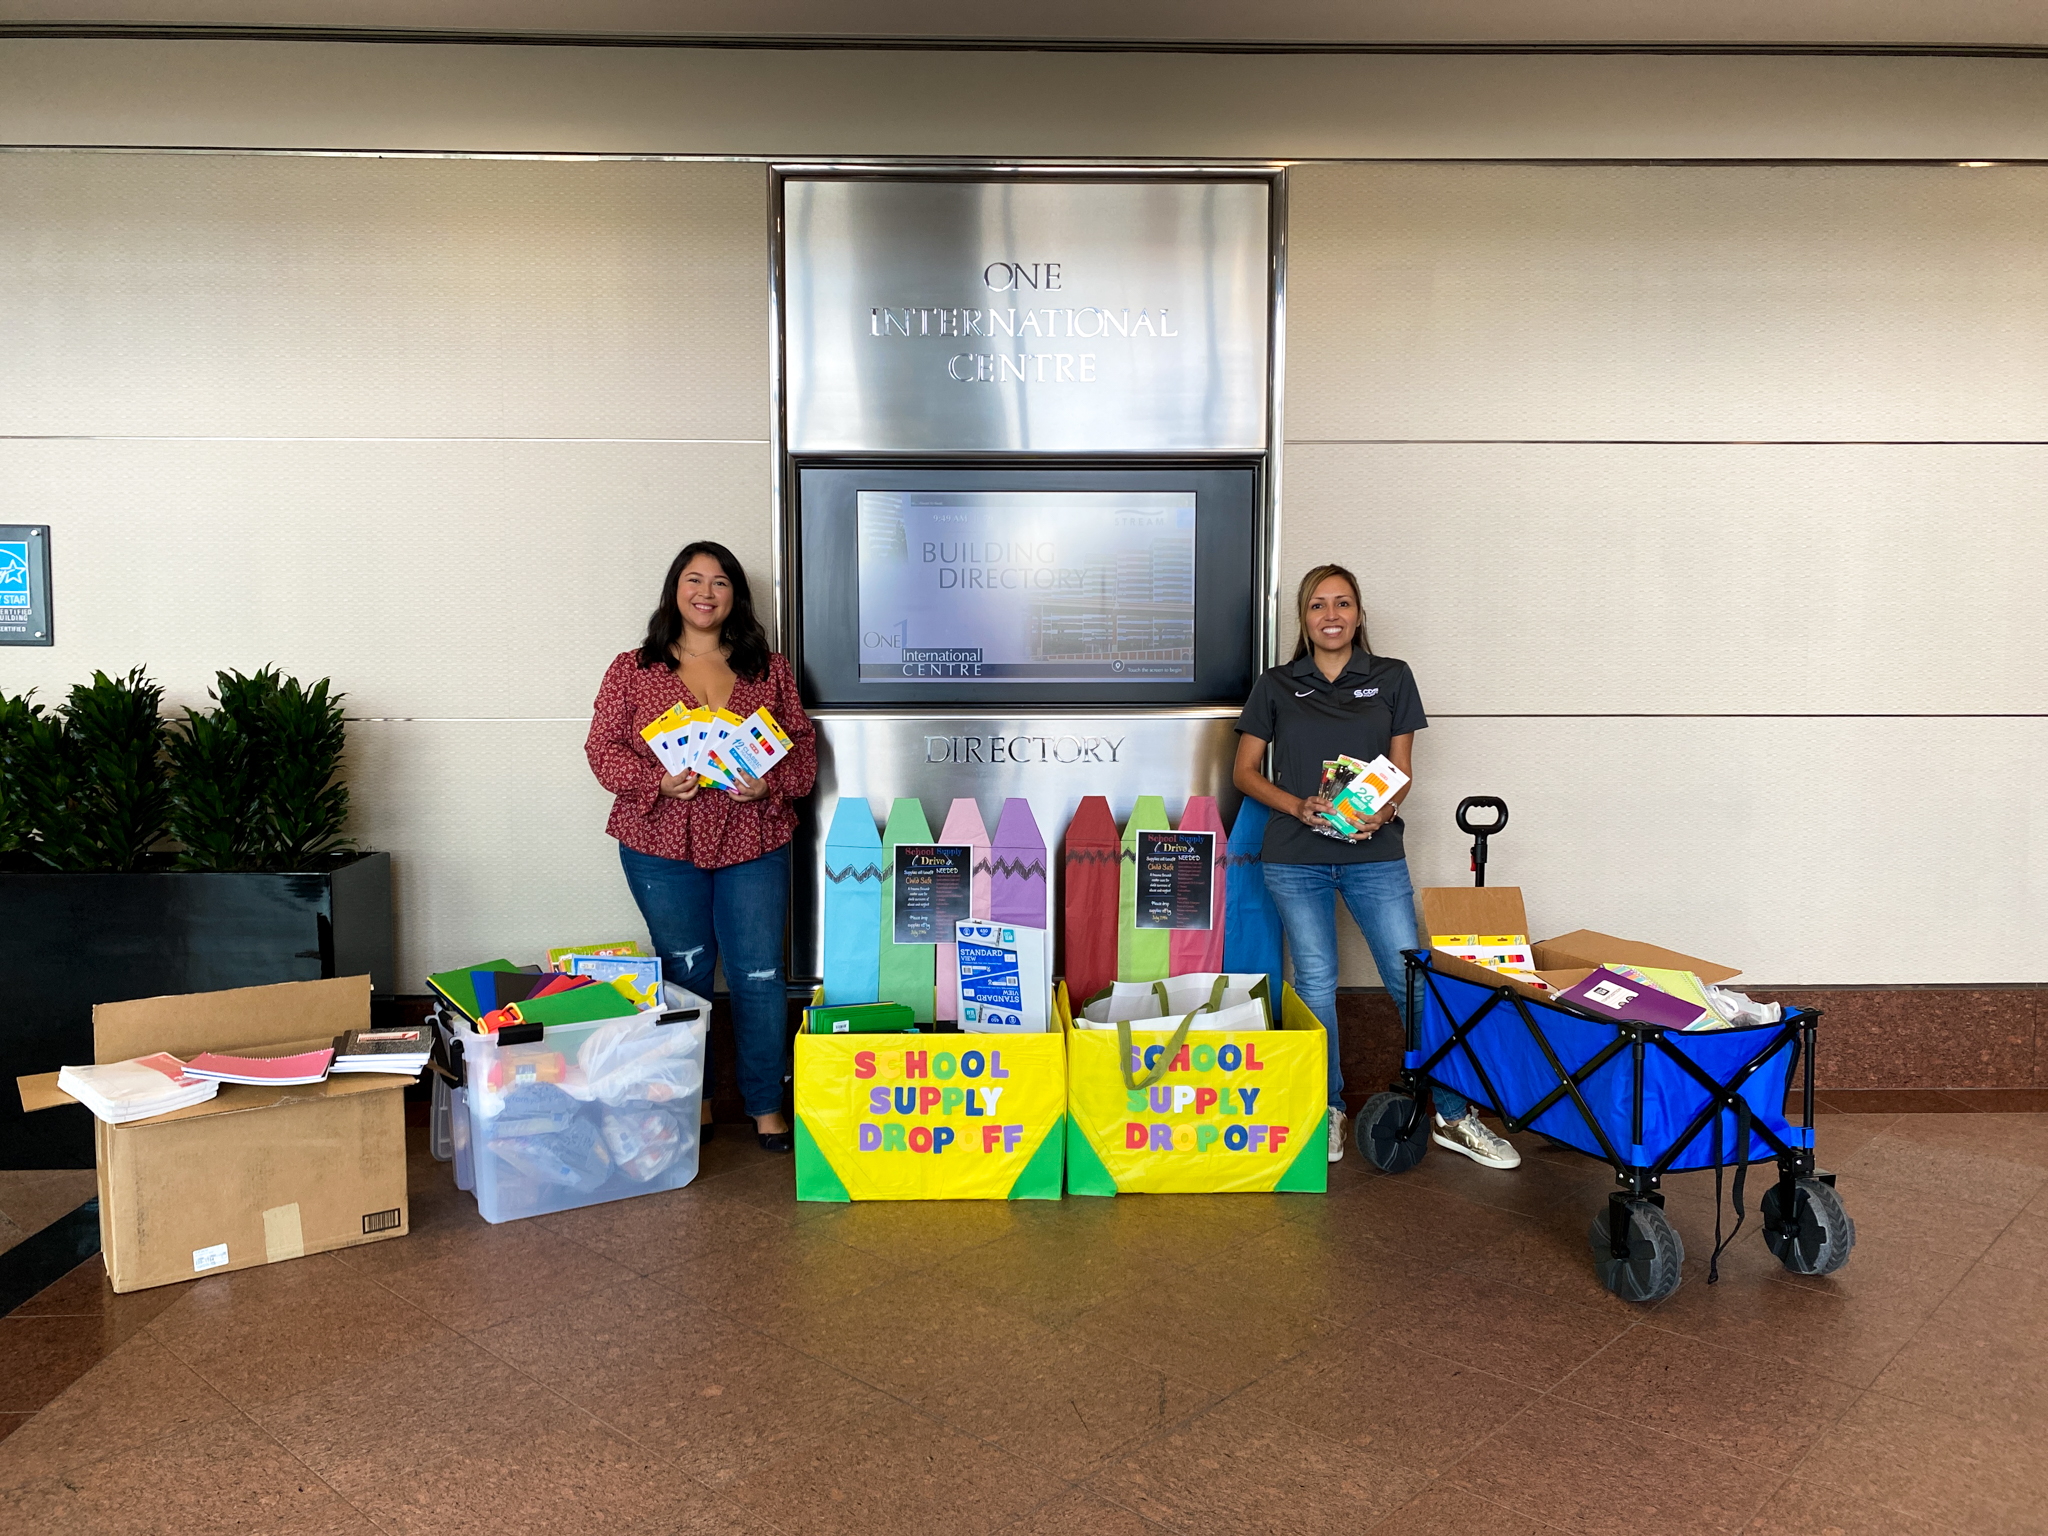 CDS Muery and Stream representatives surrounded by the school supplies donations in the lobby.